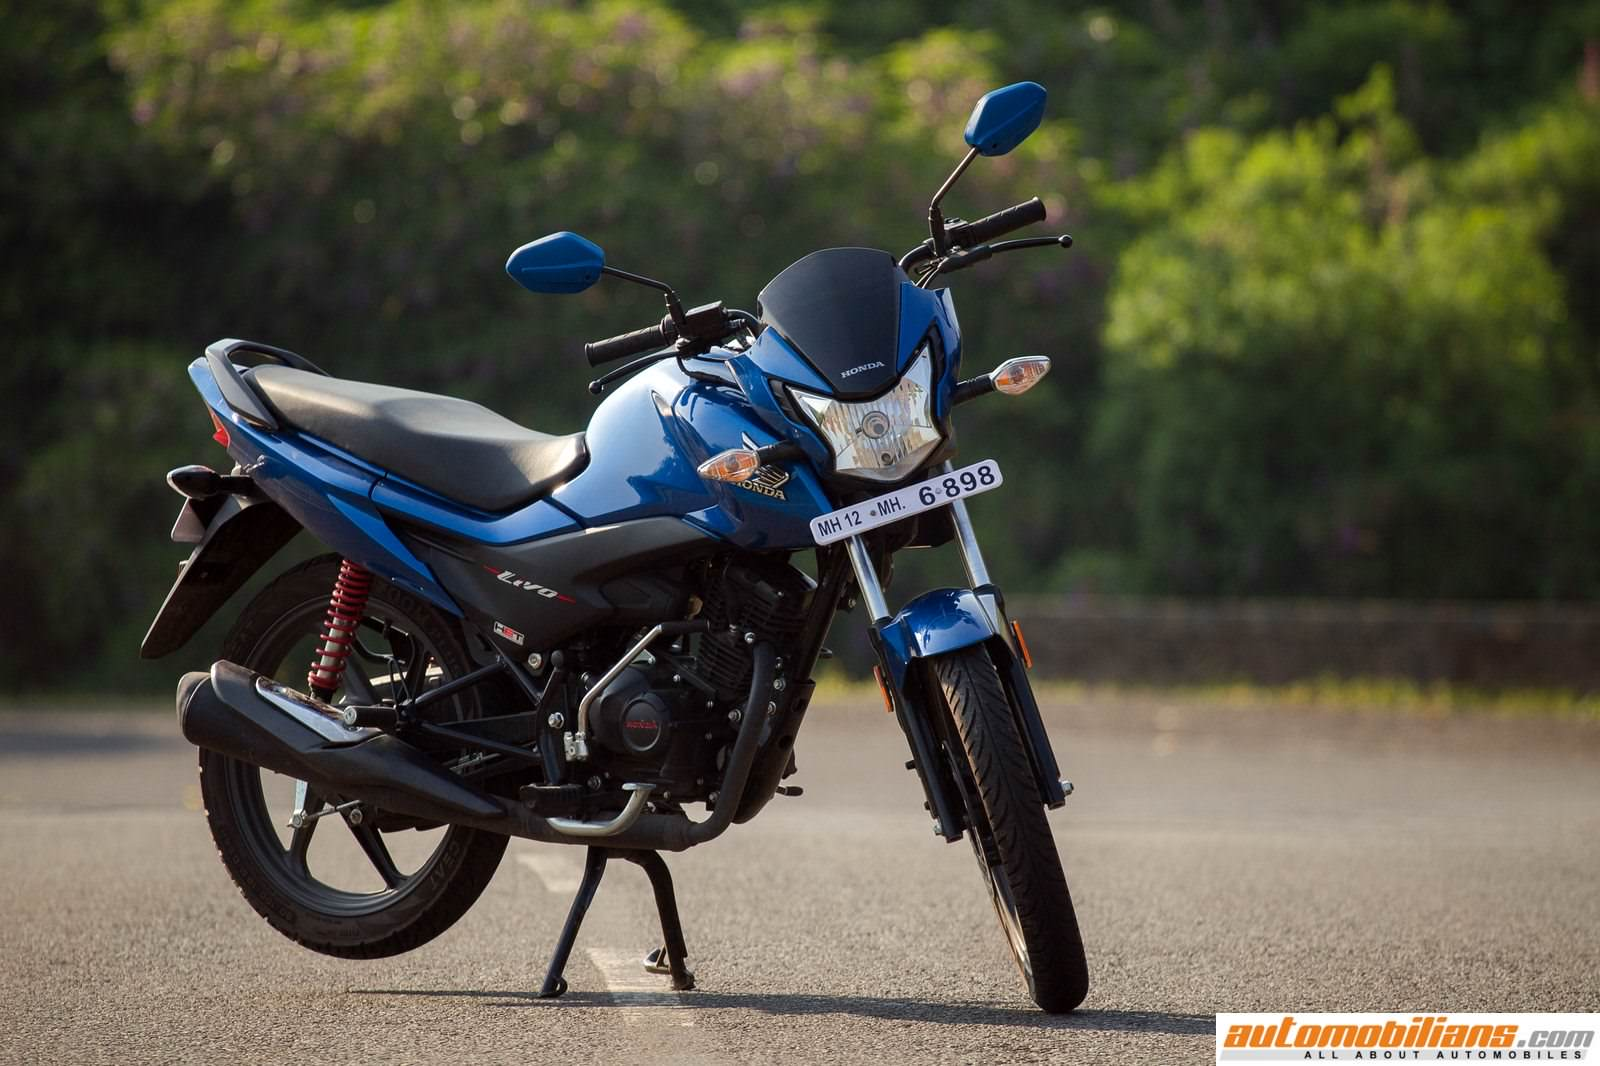 honda livo bike new prize list in india 2017 new hd wallpaper free